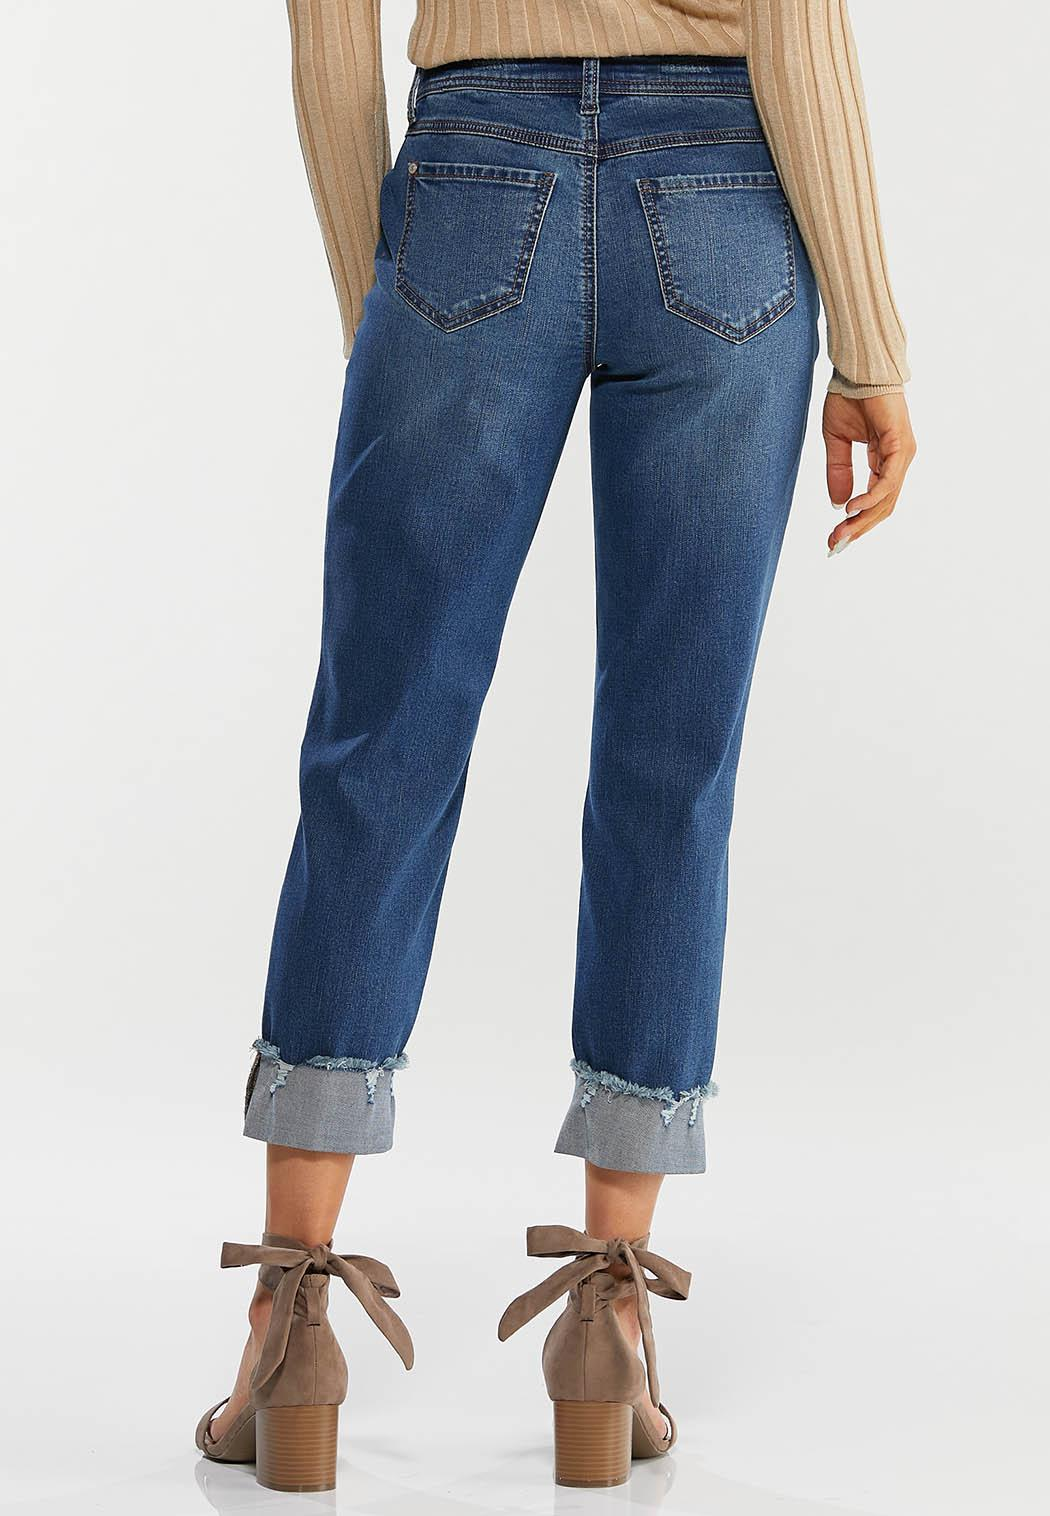 Cropped Distressed Jeans (Item #44500560)